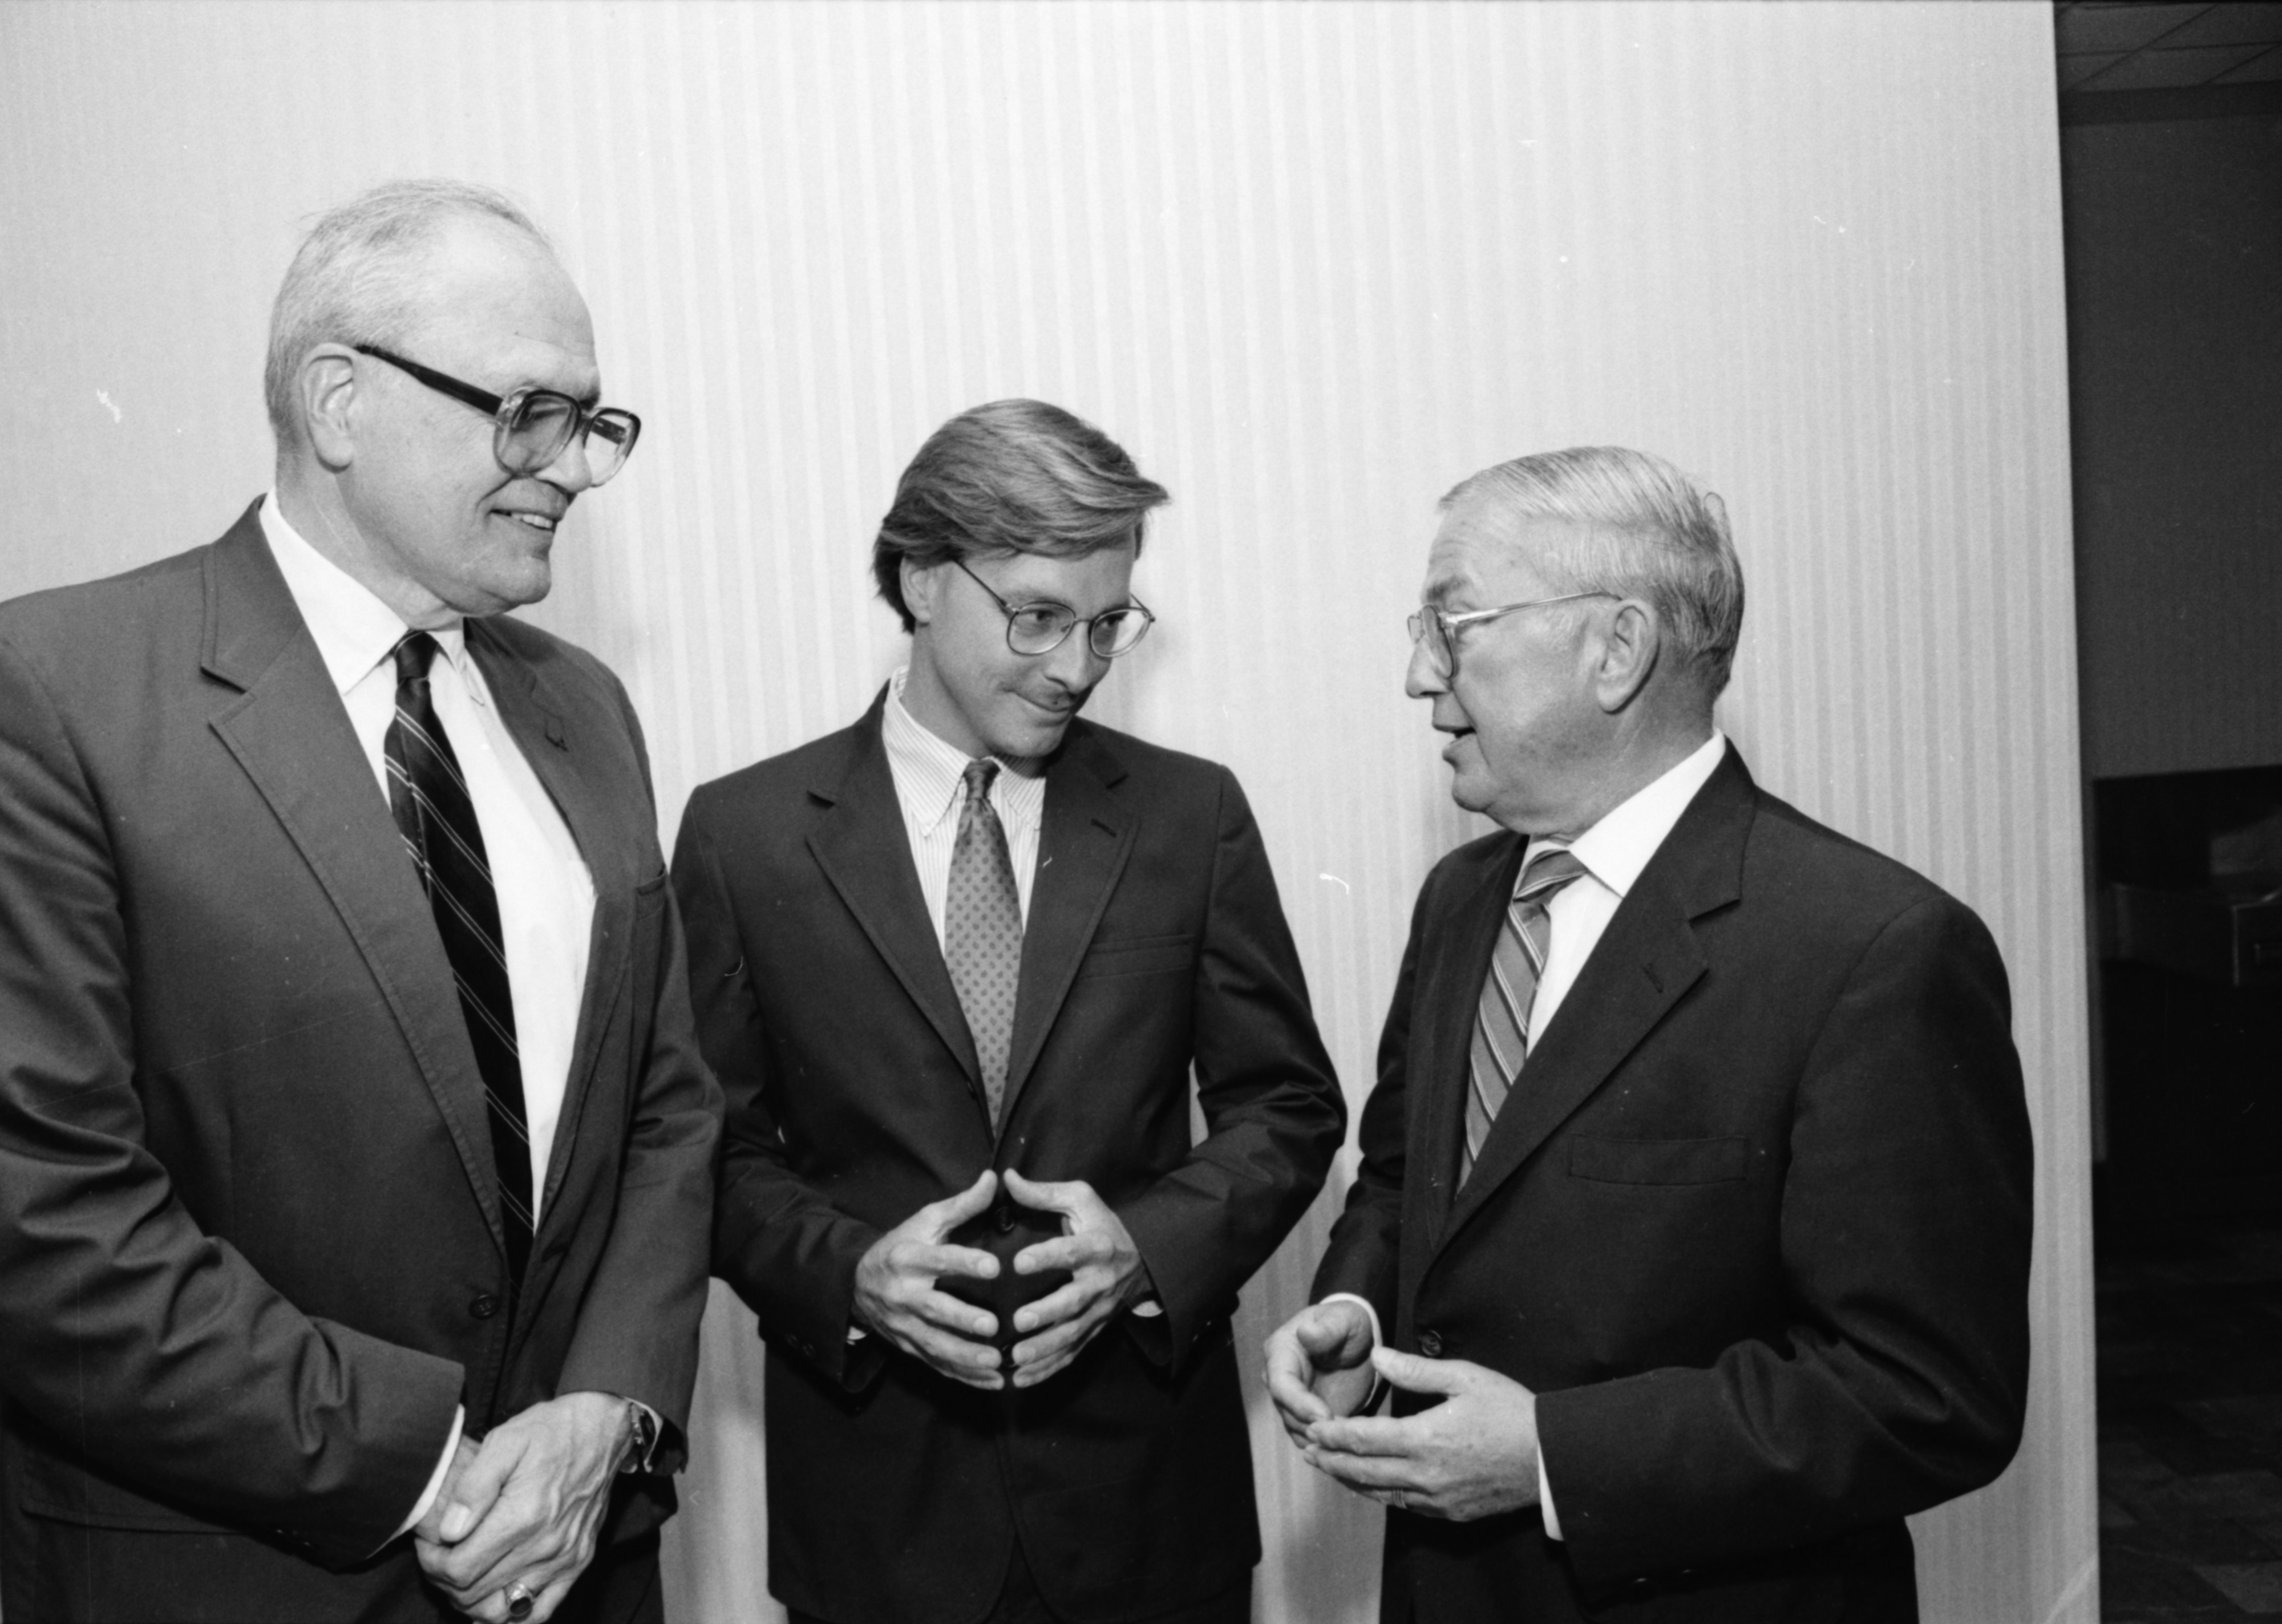 Ford, Bowman and John Dingell, May 1990 image